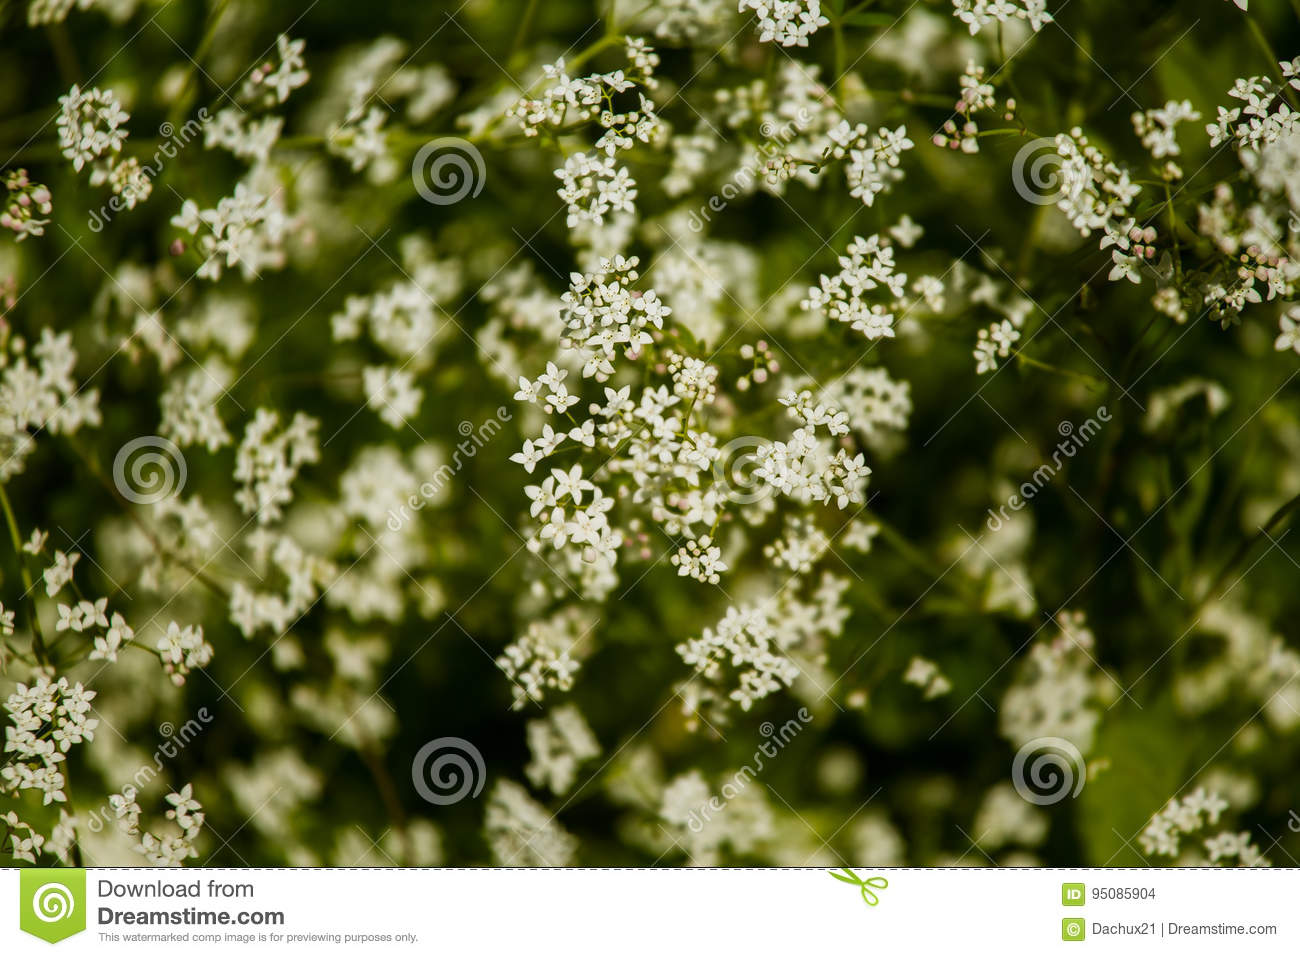 Beautiful White Tiny Flowers In A Natural Habitat In Summer Stock